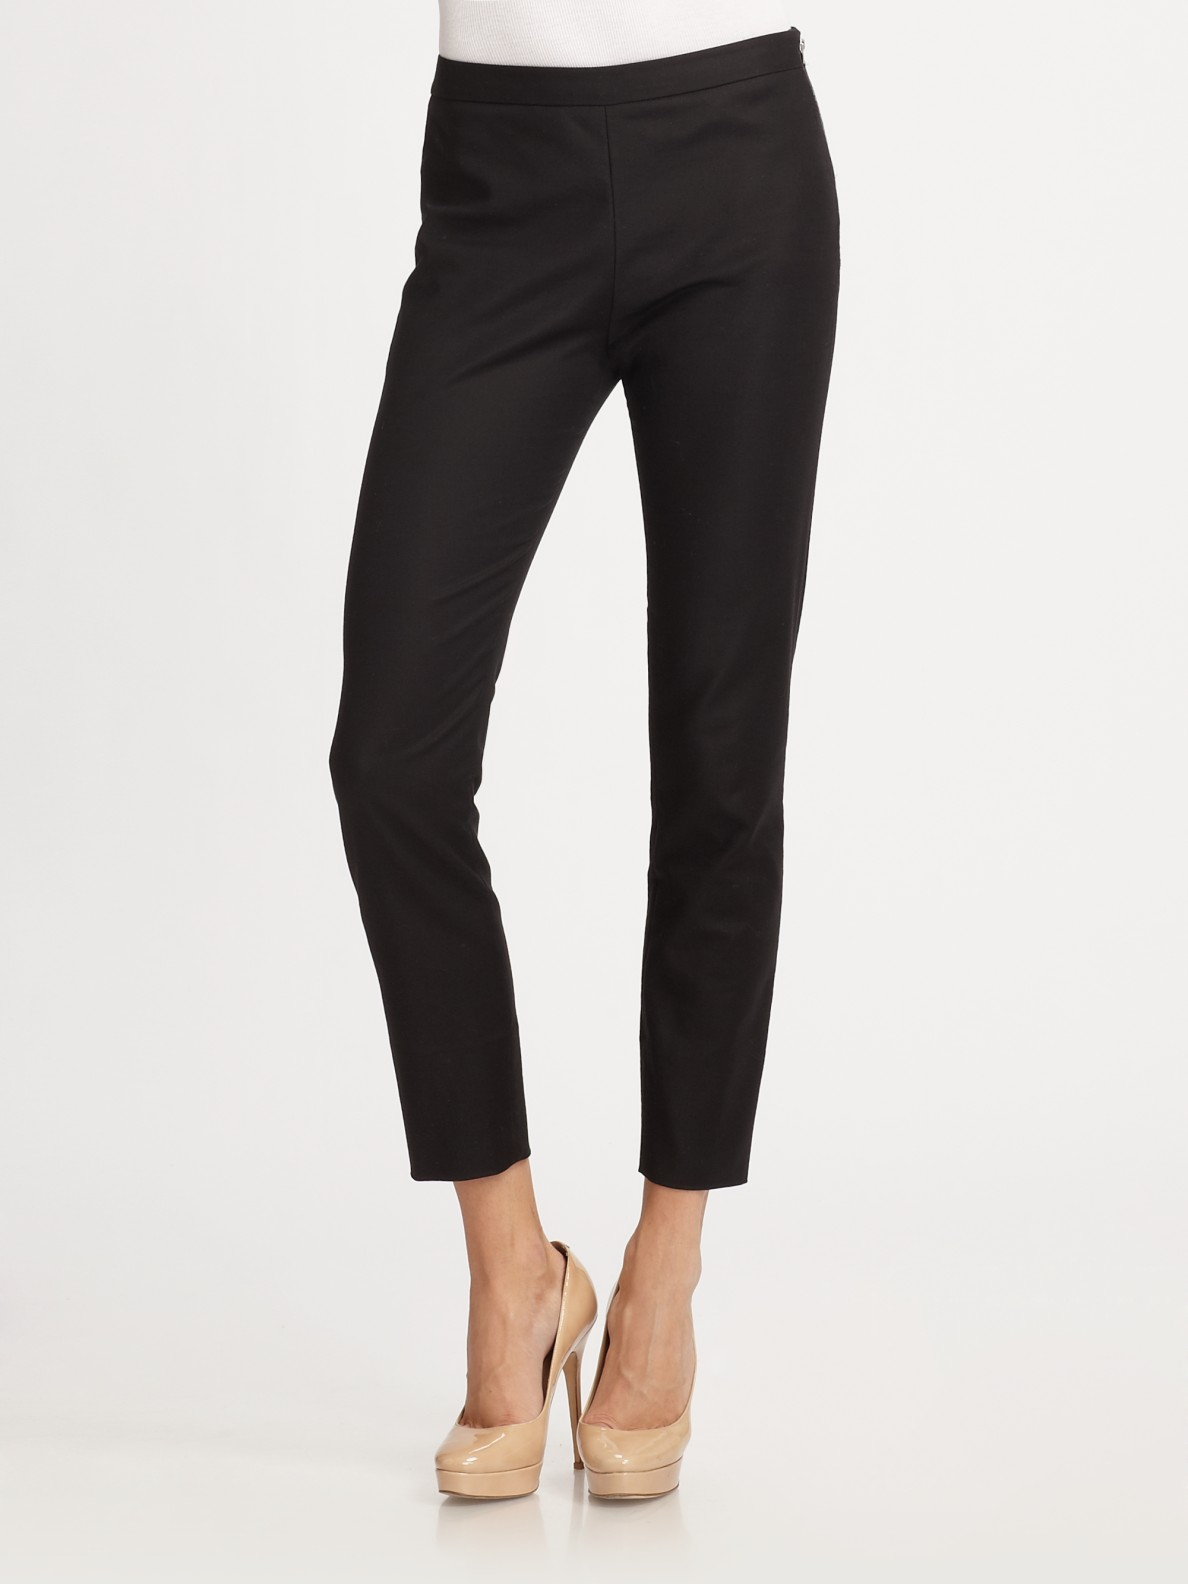 The best travel pants for women don't have to be bulky and unattractive. We've found the perfect pants to join you on all your adventures. They're versatile, lightweight, highly functional, and stylish, too!